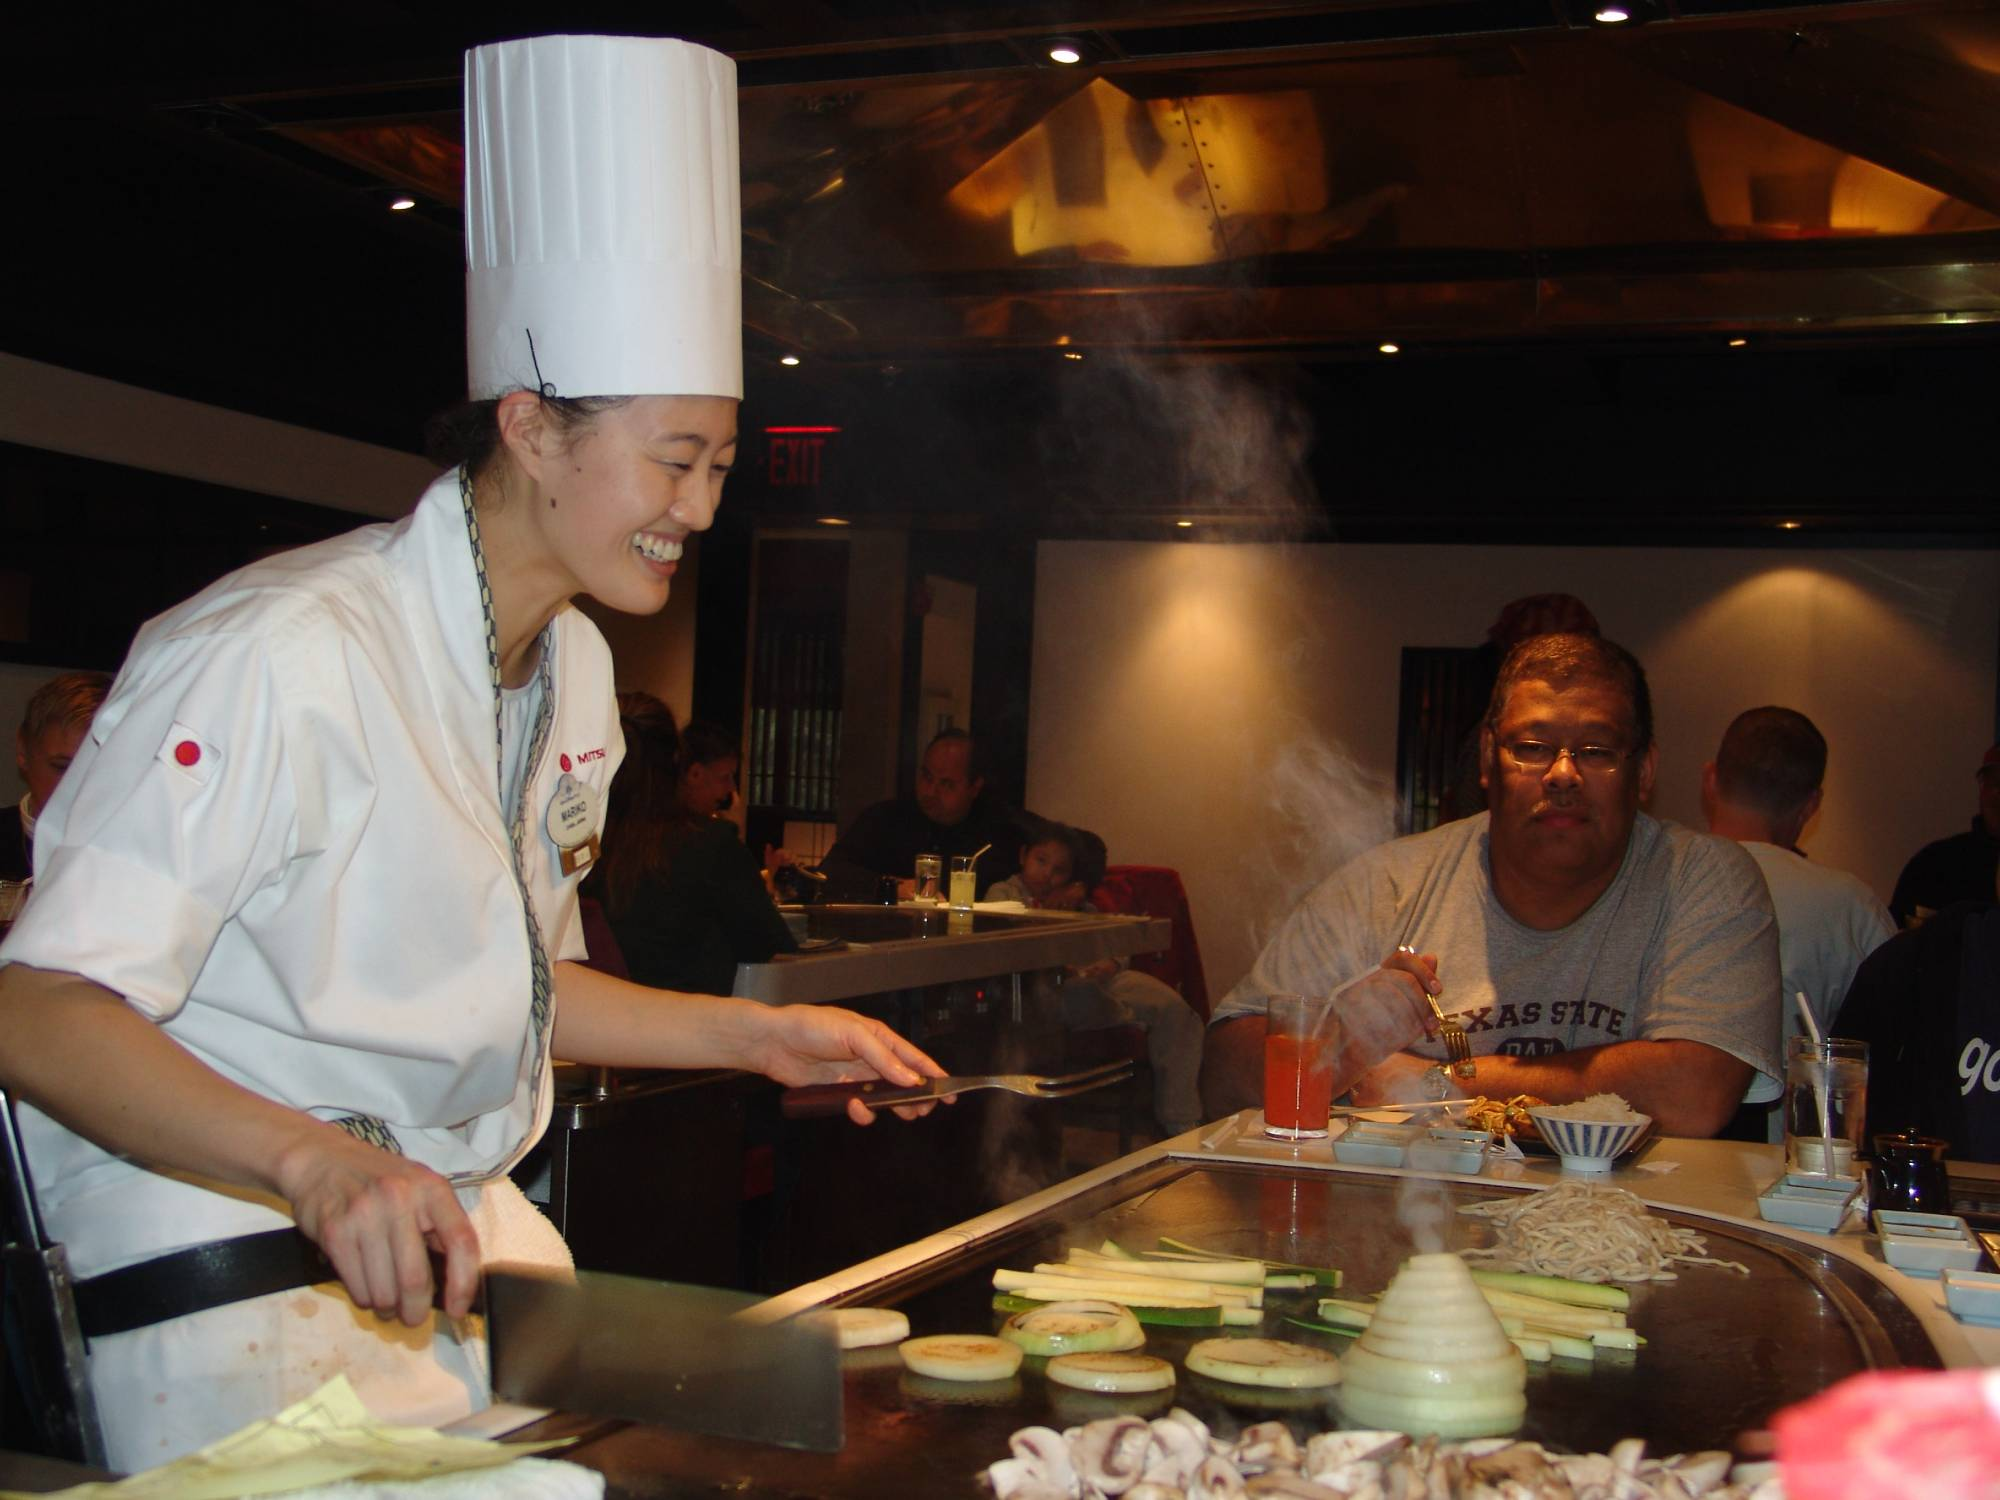 Enjoy a memorable meal at Teppan Edo in Epcot's World Showcase | PassPorter.com